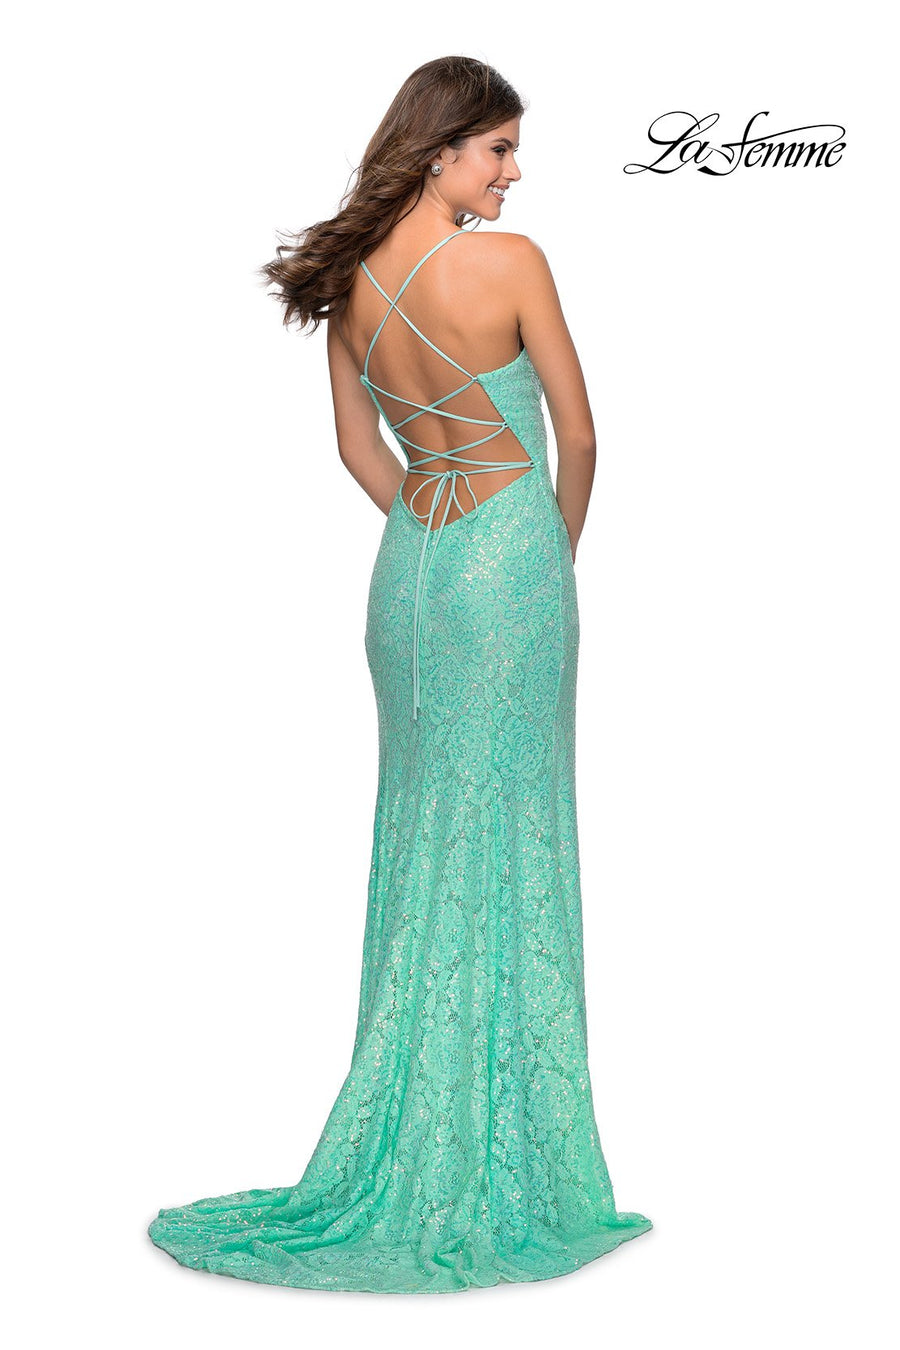 La Femme 28359 prom dress images.  La Femme 28359 is available in these colors: Cloud Blue, Mint, Pale Yellow, Peach.